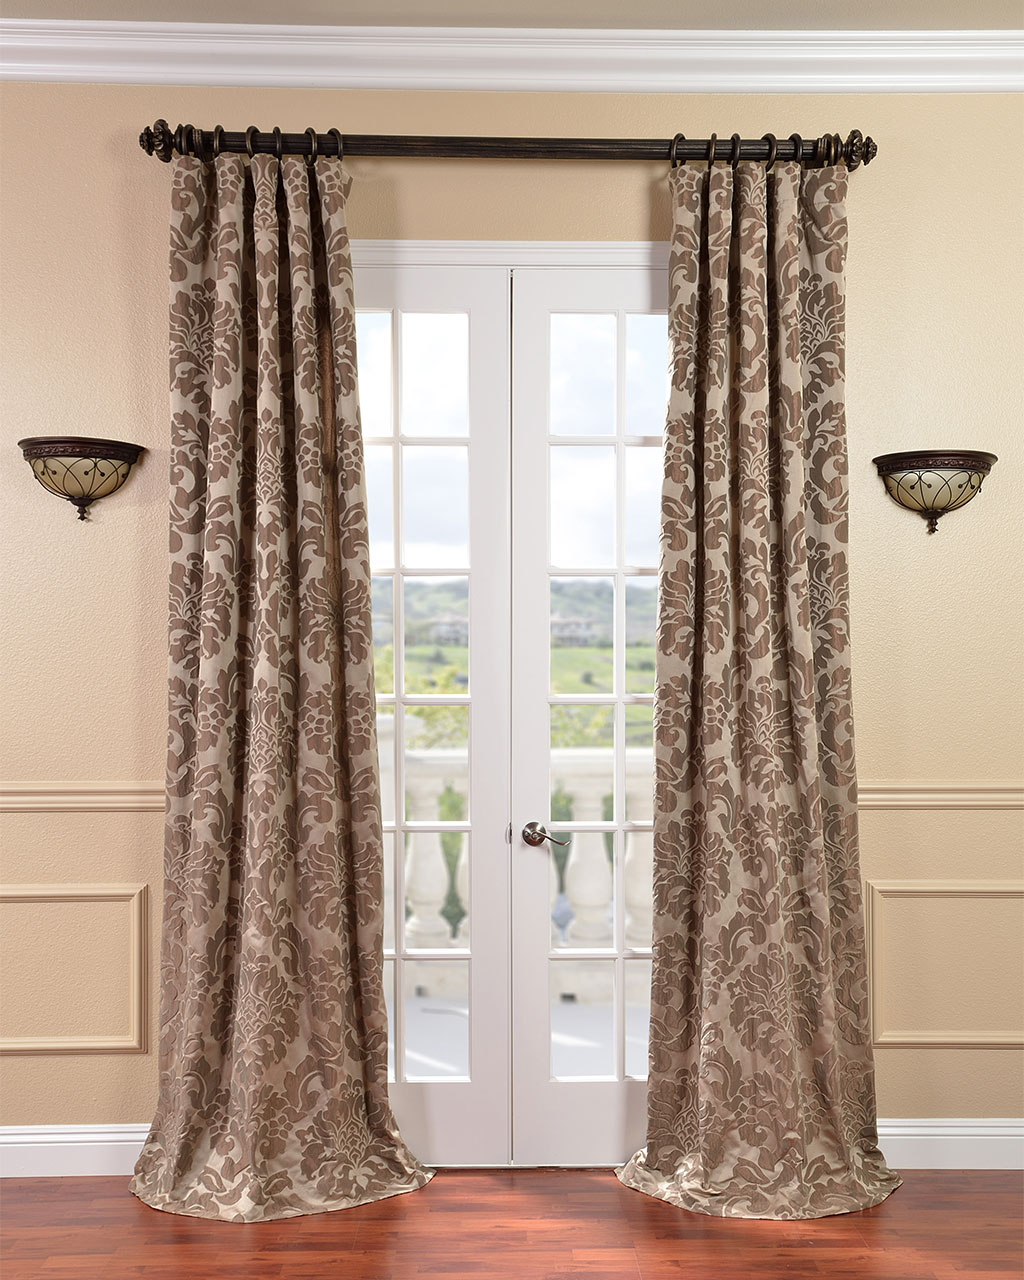 Lace and curtains the best window treatment for french for Home drapes and curtains